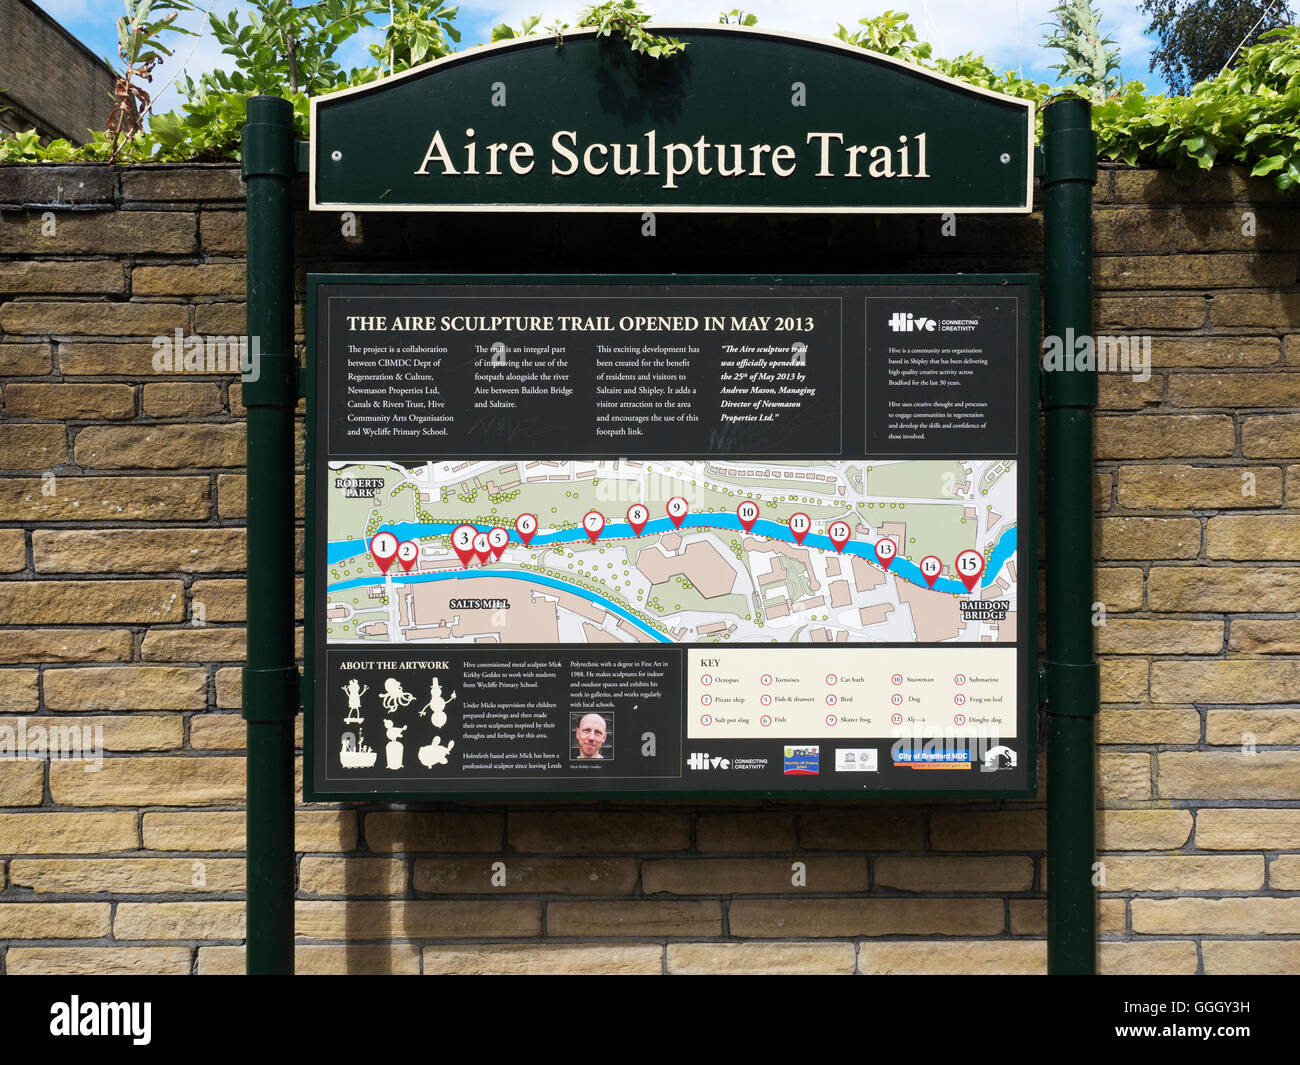 Aire Sculpture Trail Sign on the Leeds and Liverpool Canal Towpath at Saltaire West Yorkshire England - Stock Image